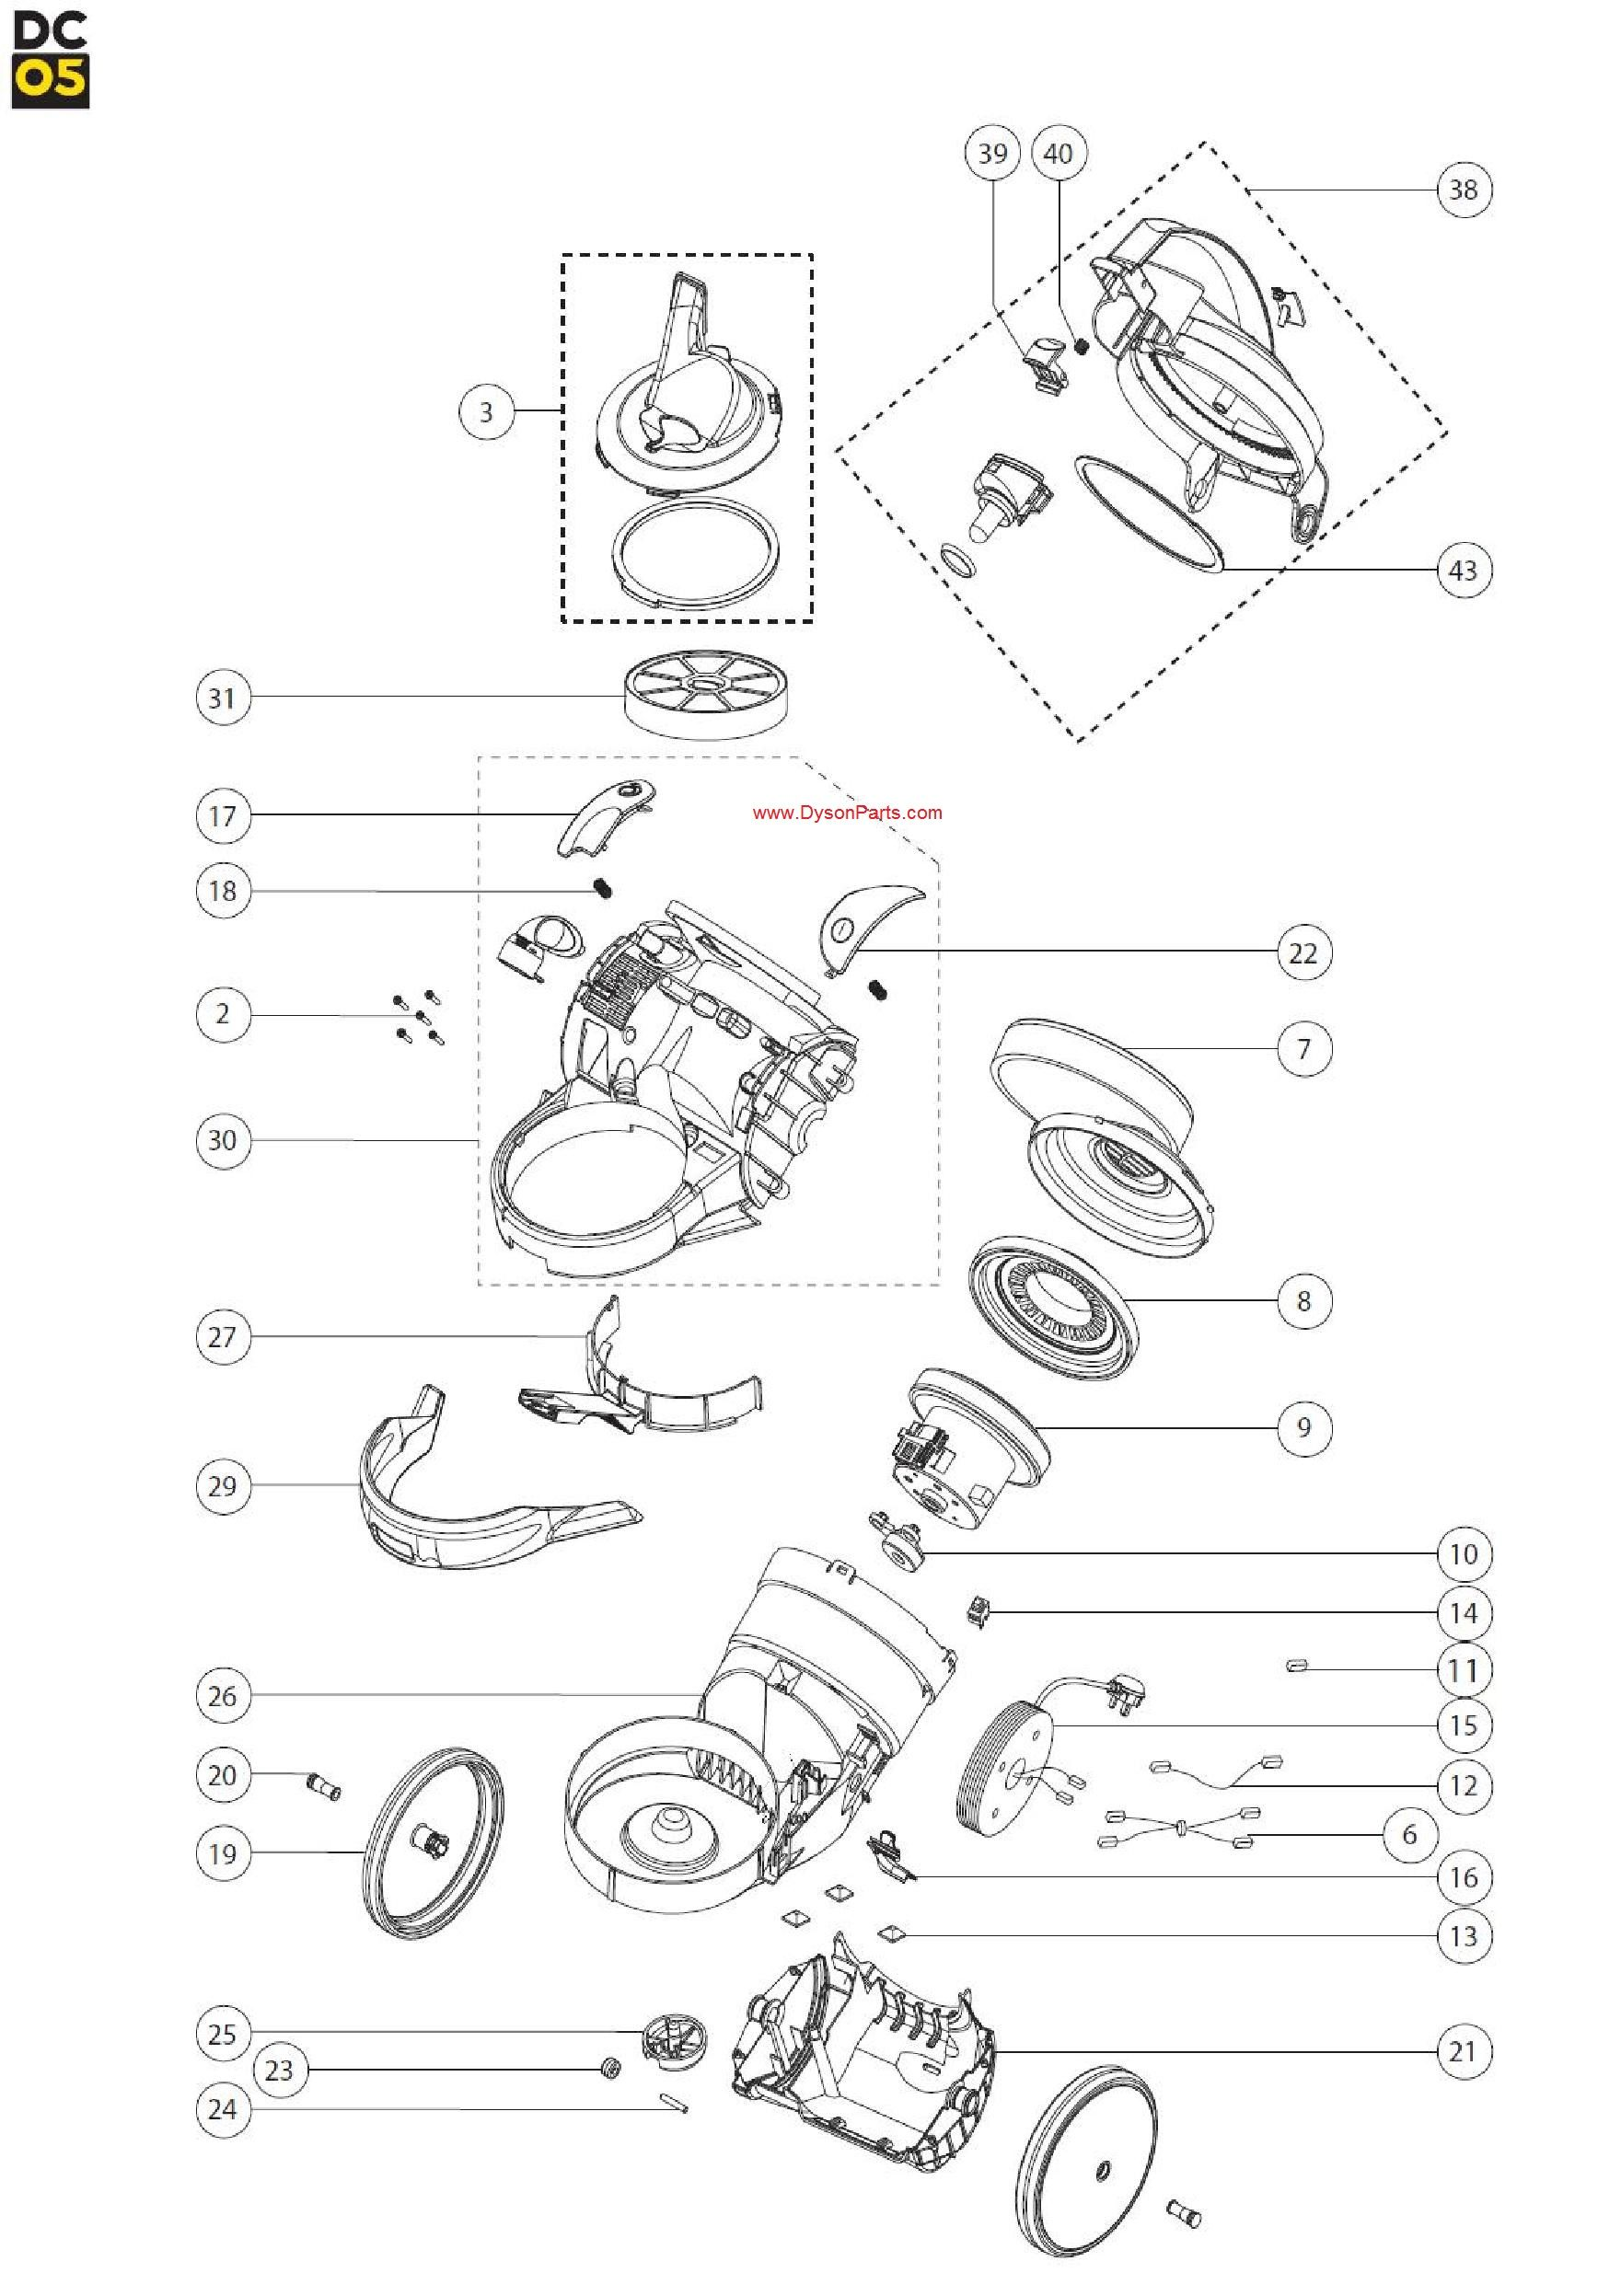 If you need exploded drawings or a schematic for the #